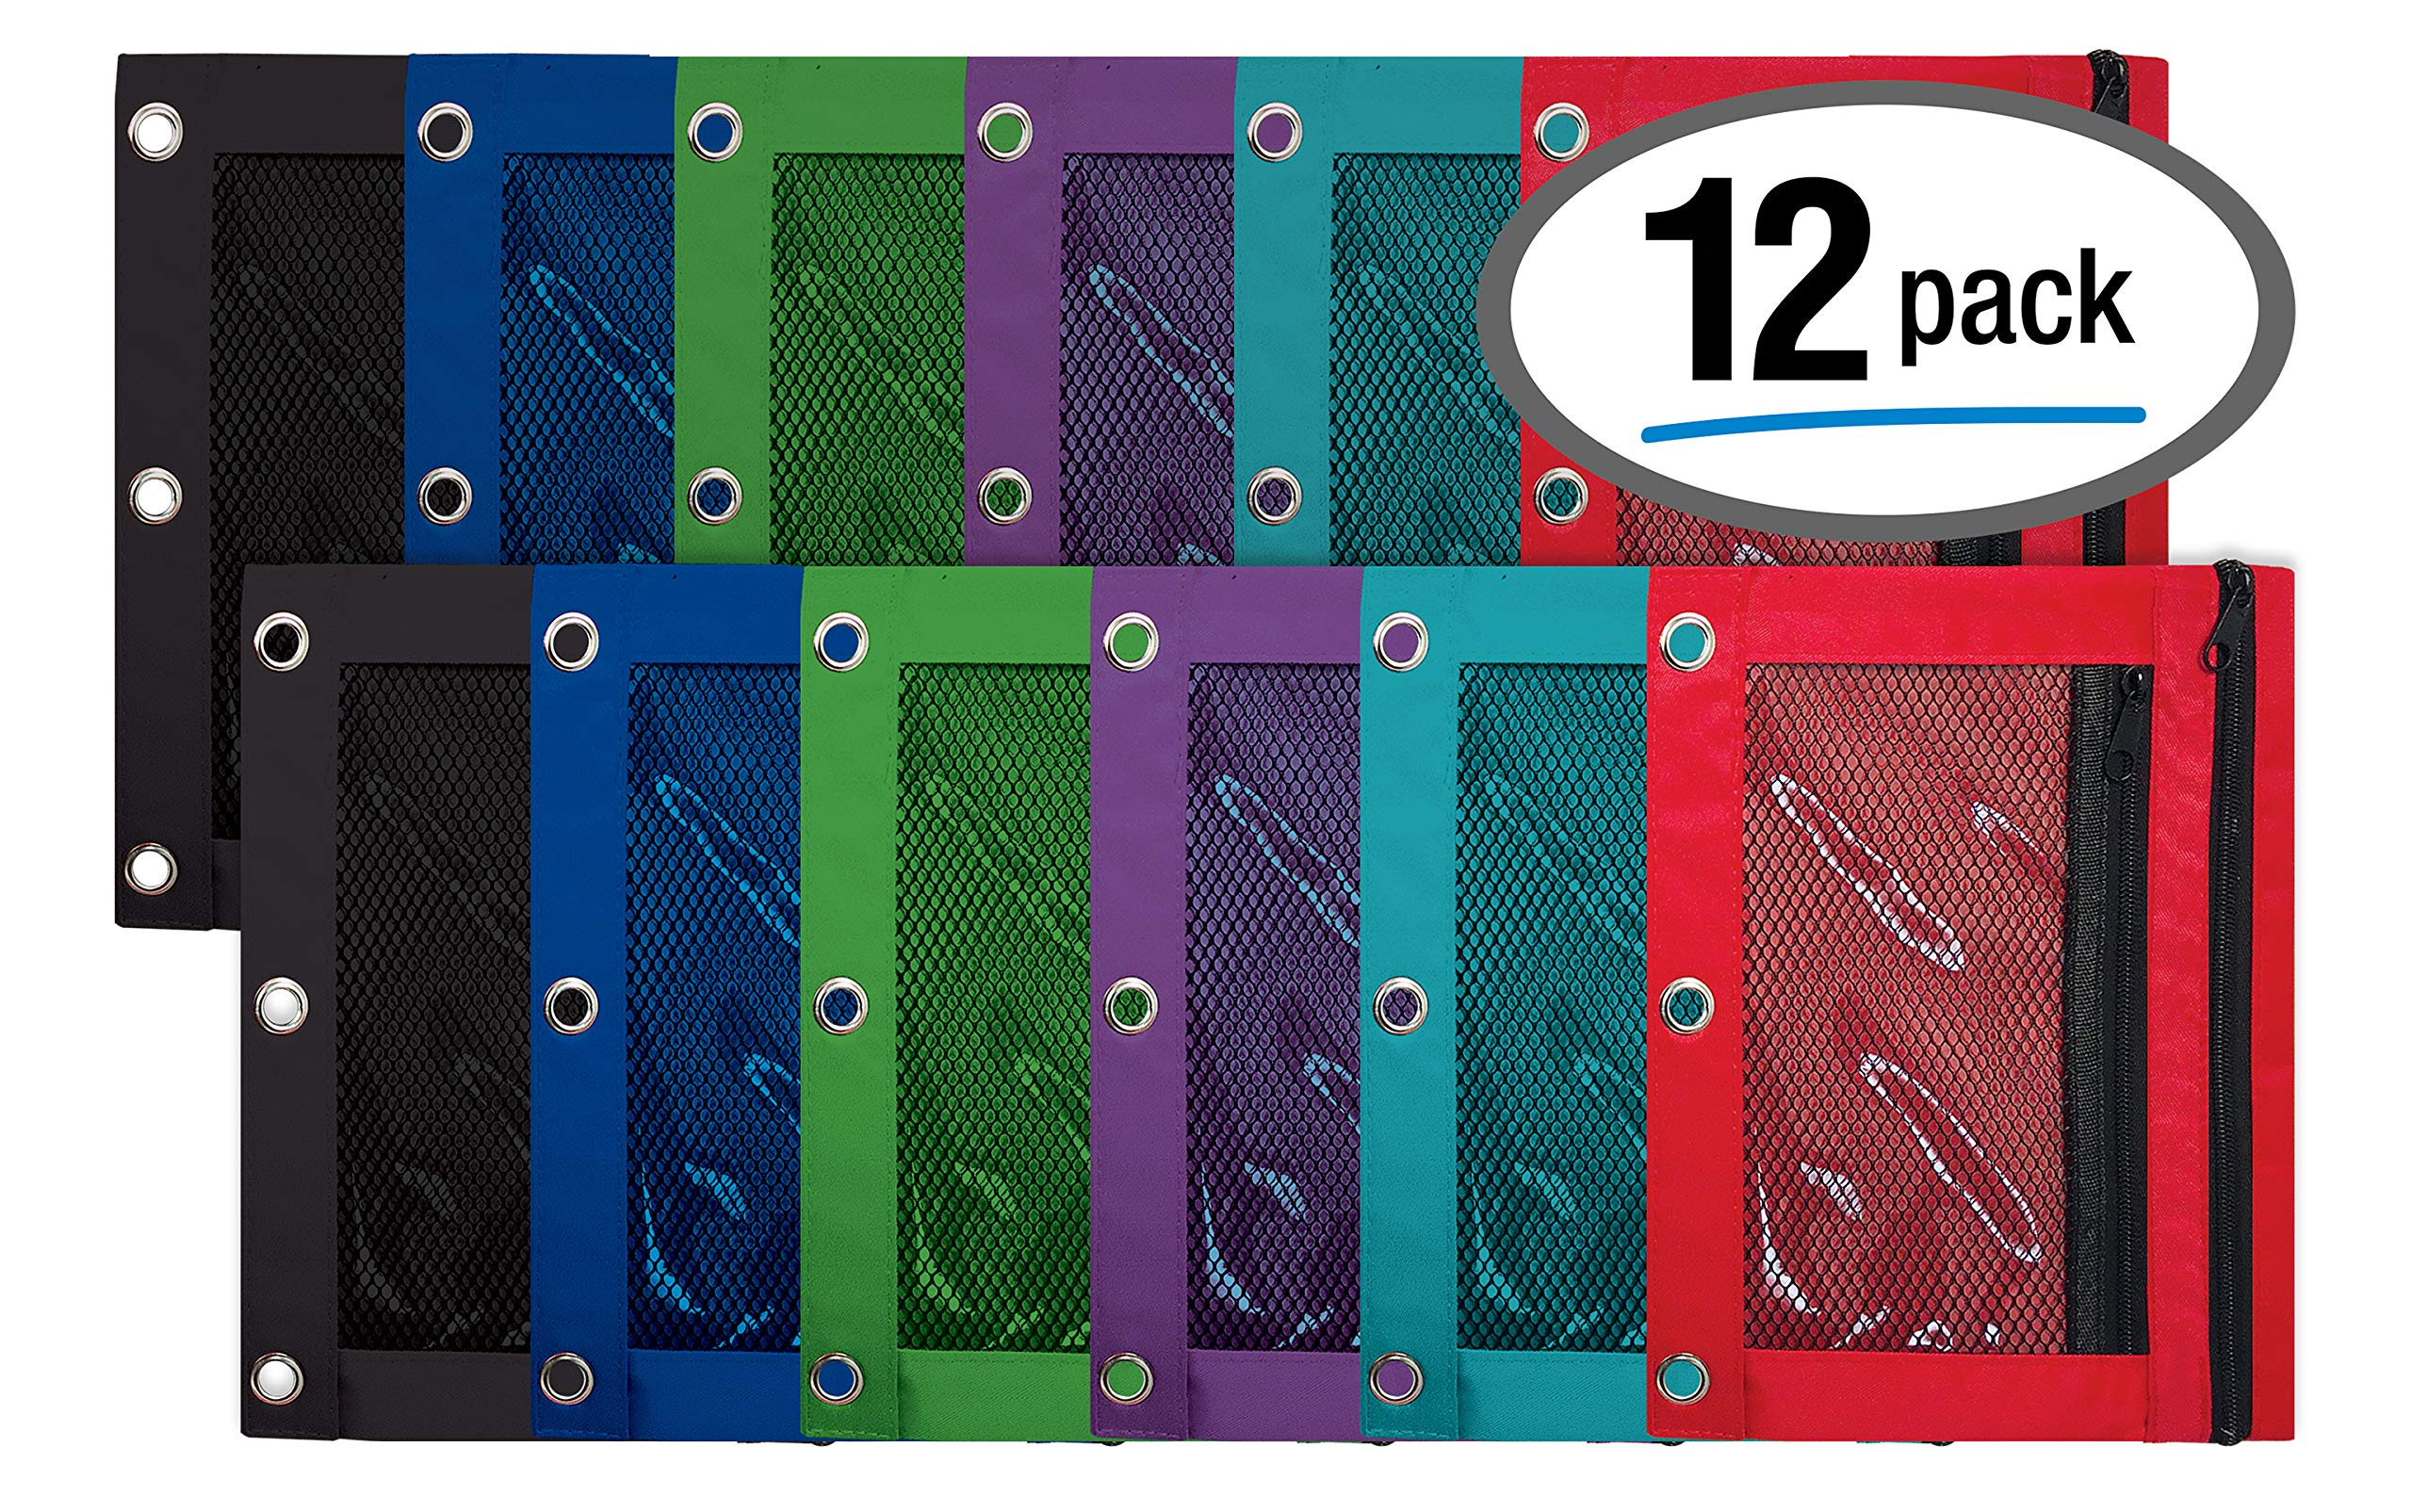 3 Ring Pencil Pouch, 12 Pack, with Mesh Window, 2 Compartments, Assorted Colors